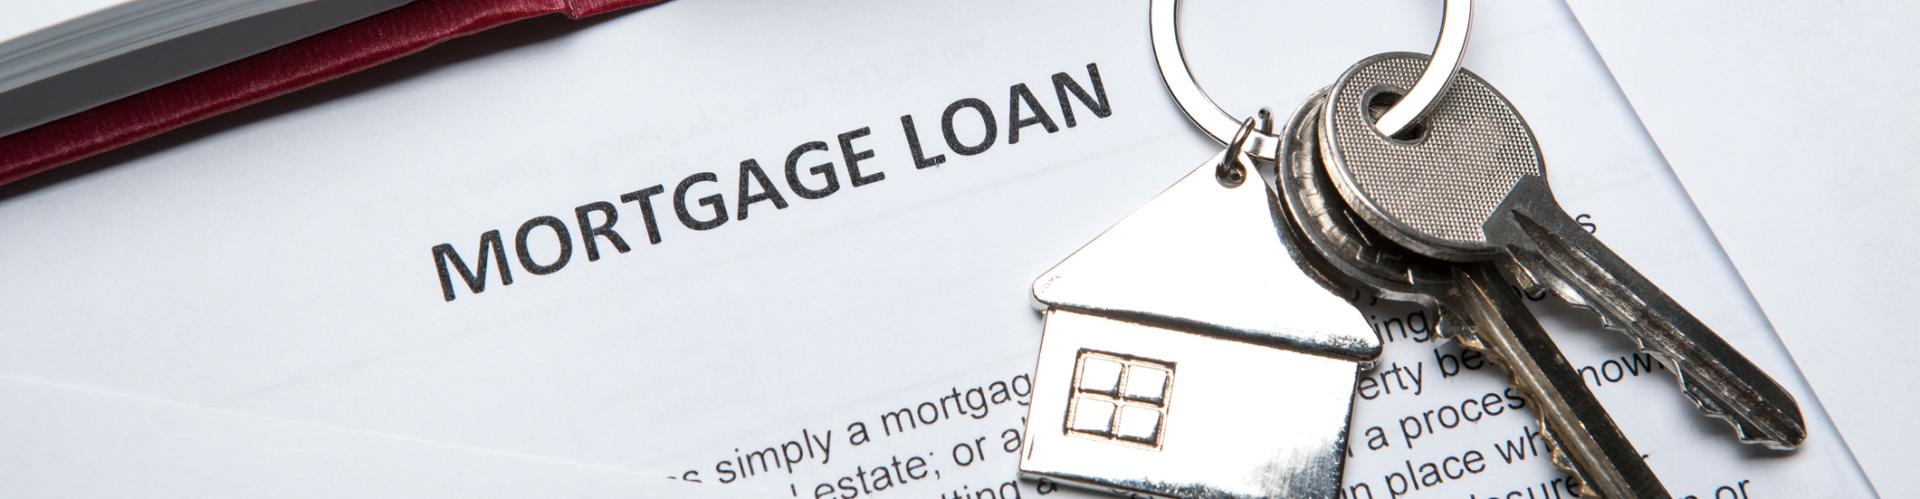 State Home Mortgage